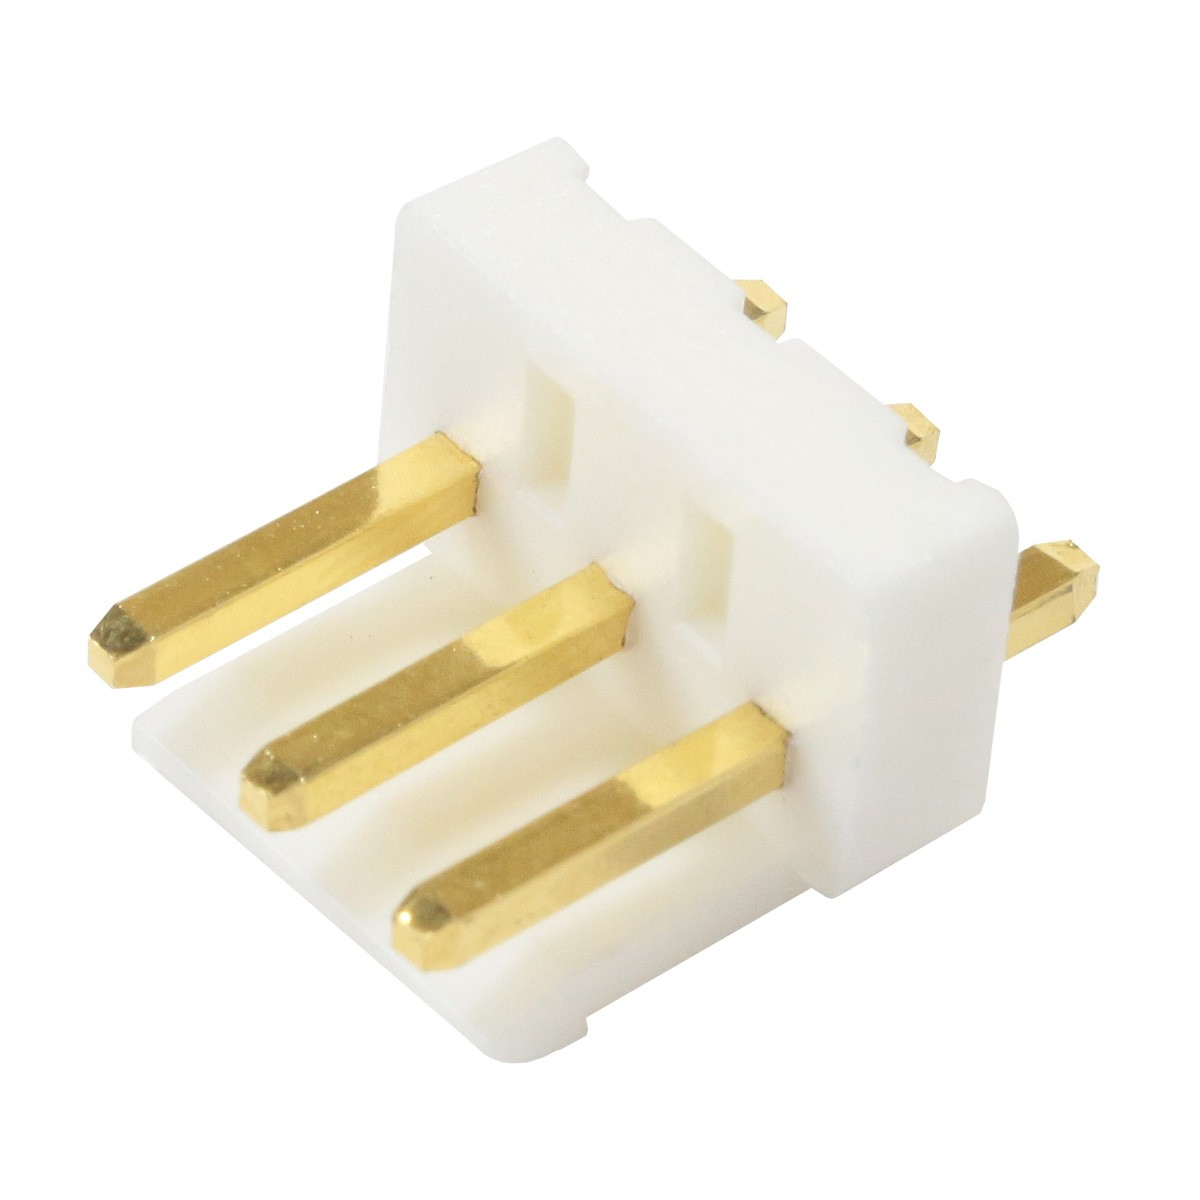 VH 3.96mm Male Socket 3 Channels Gold-Plated White (Unit)